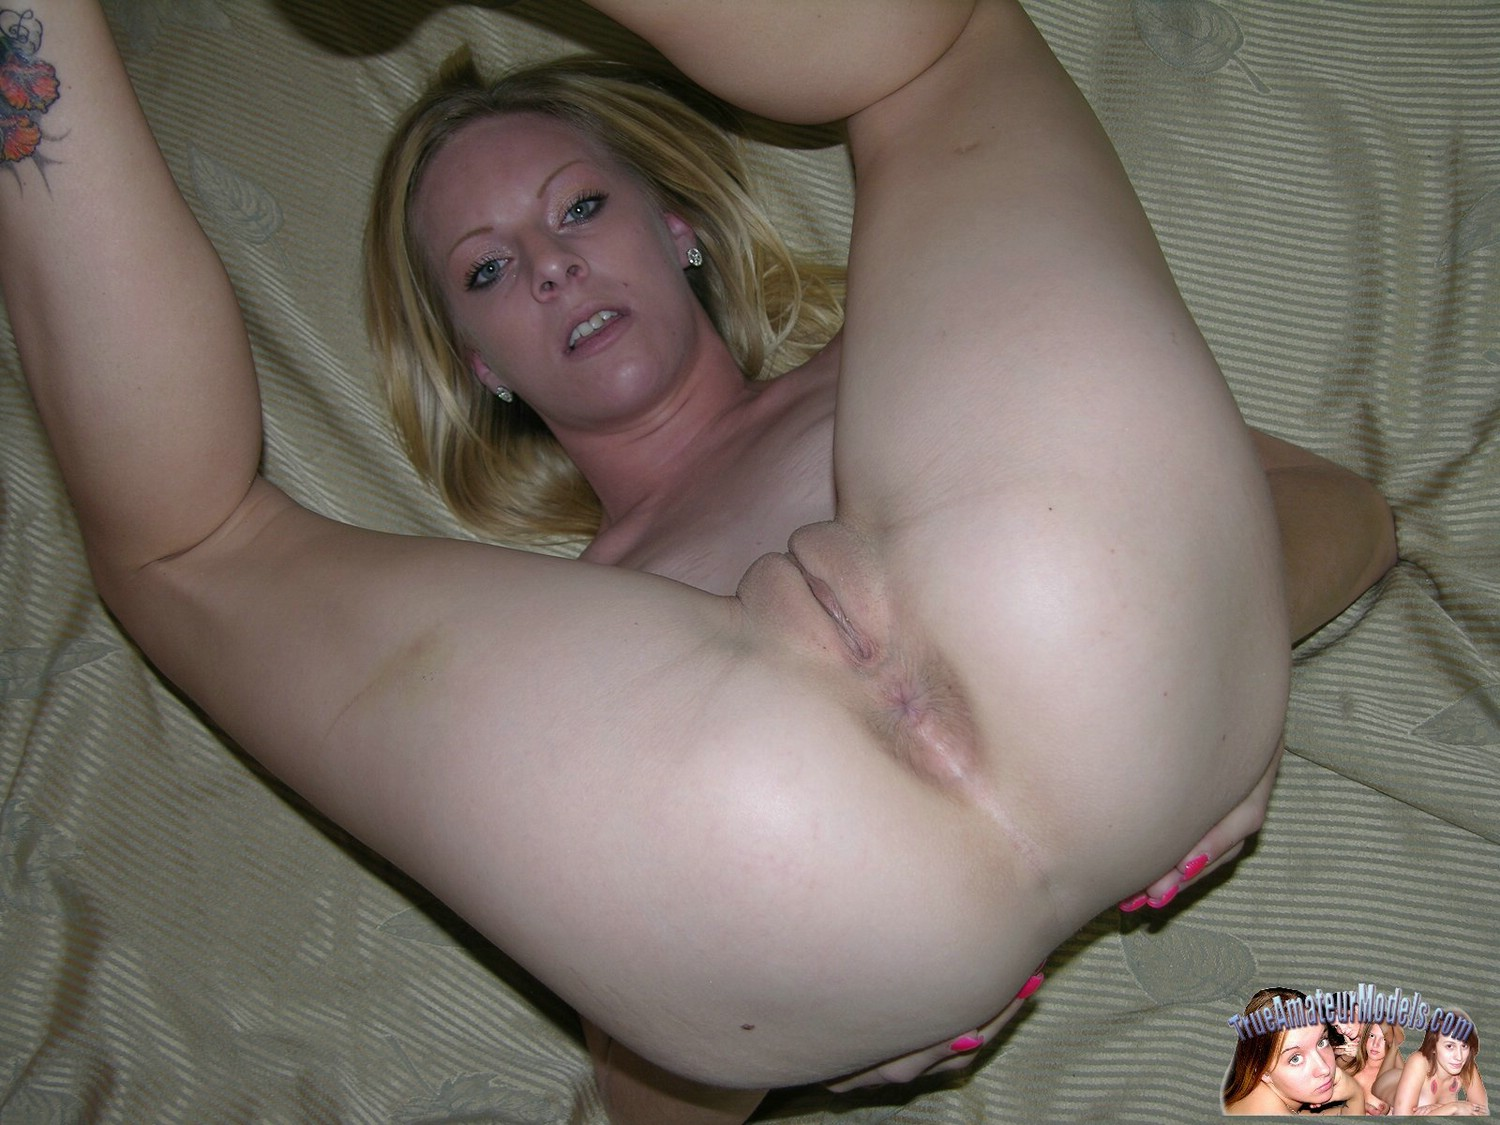 Girls fondling dicks blogspot